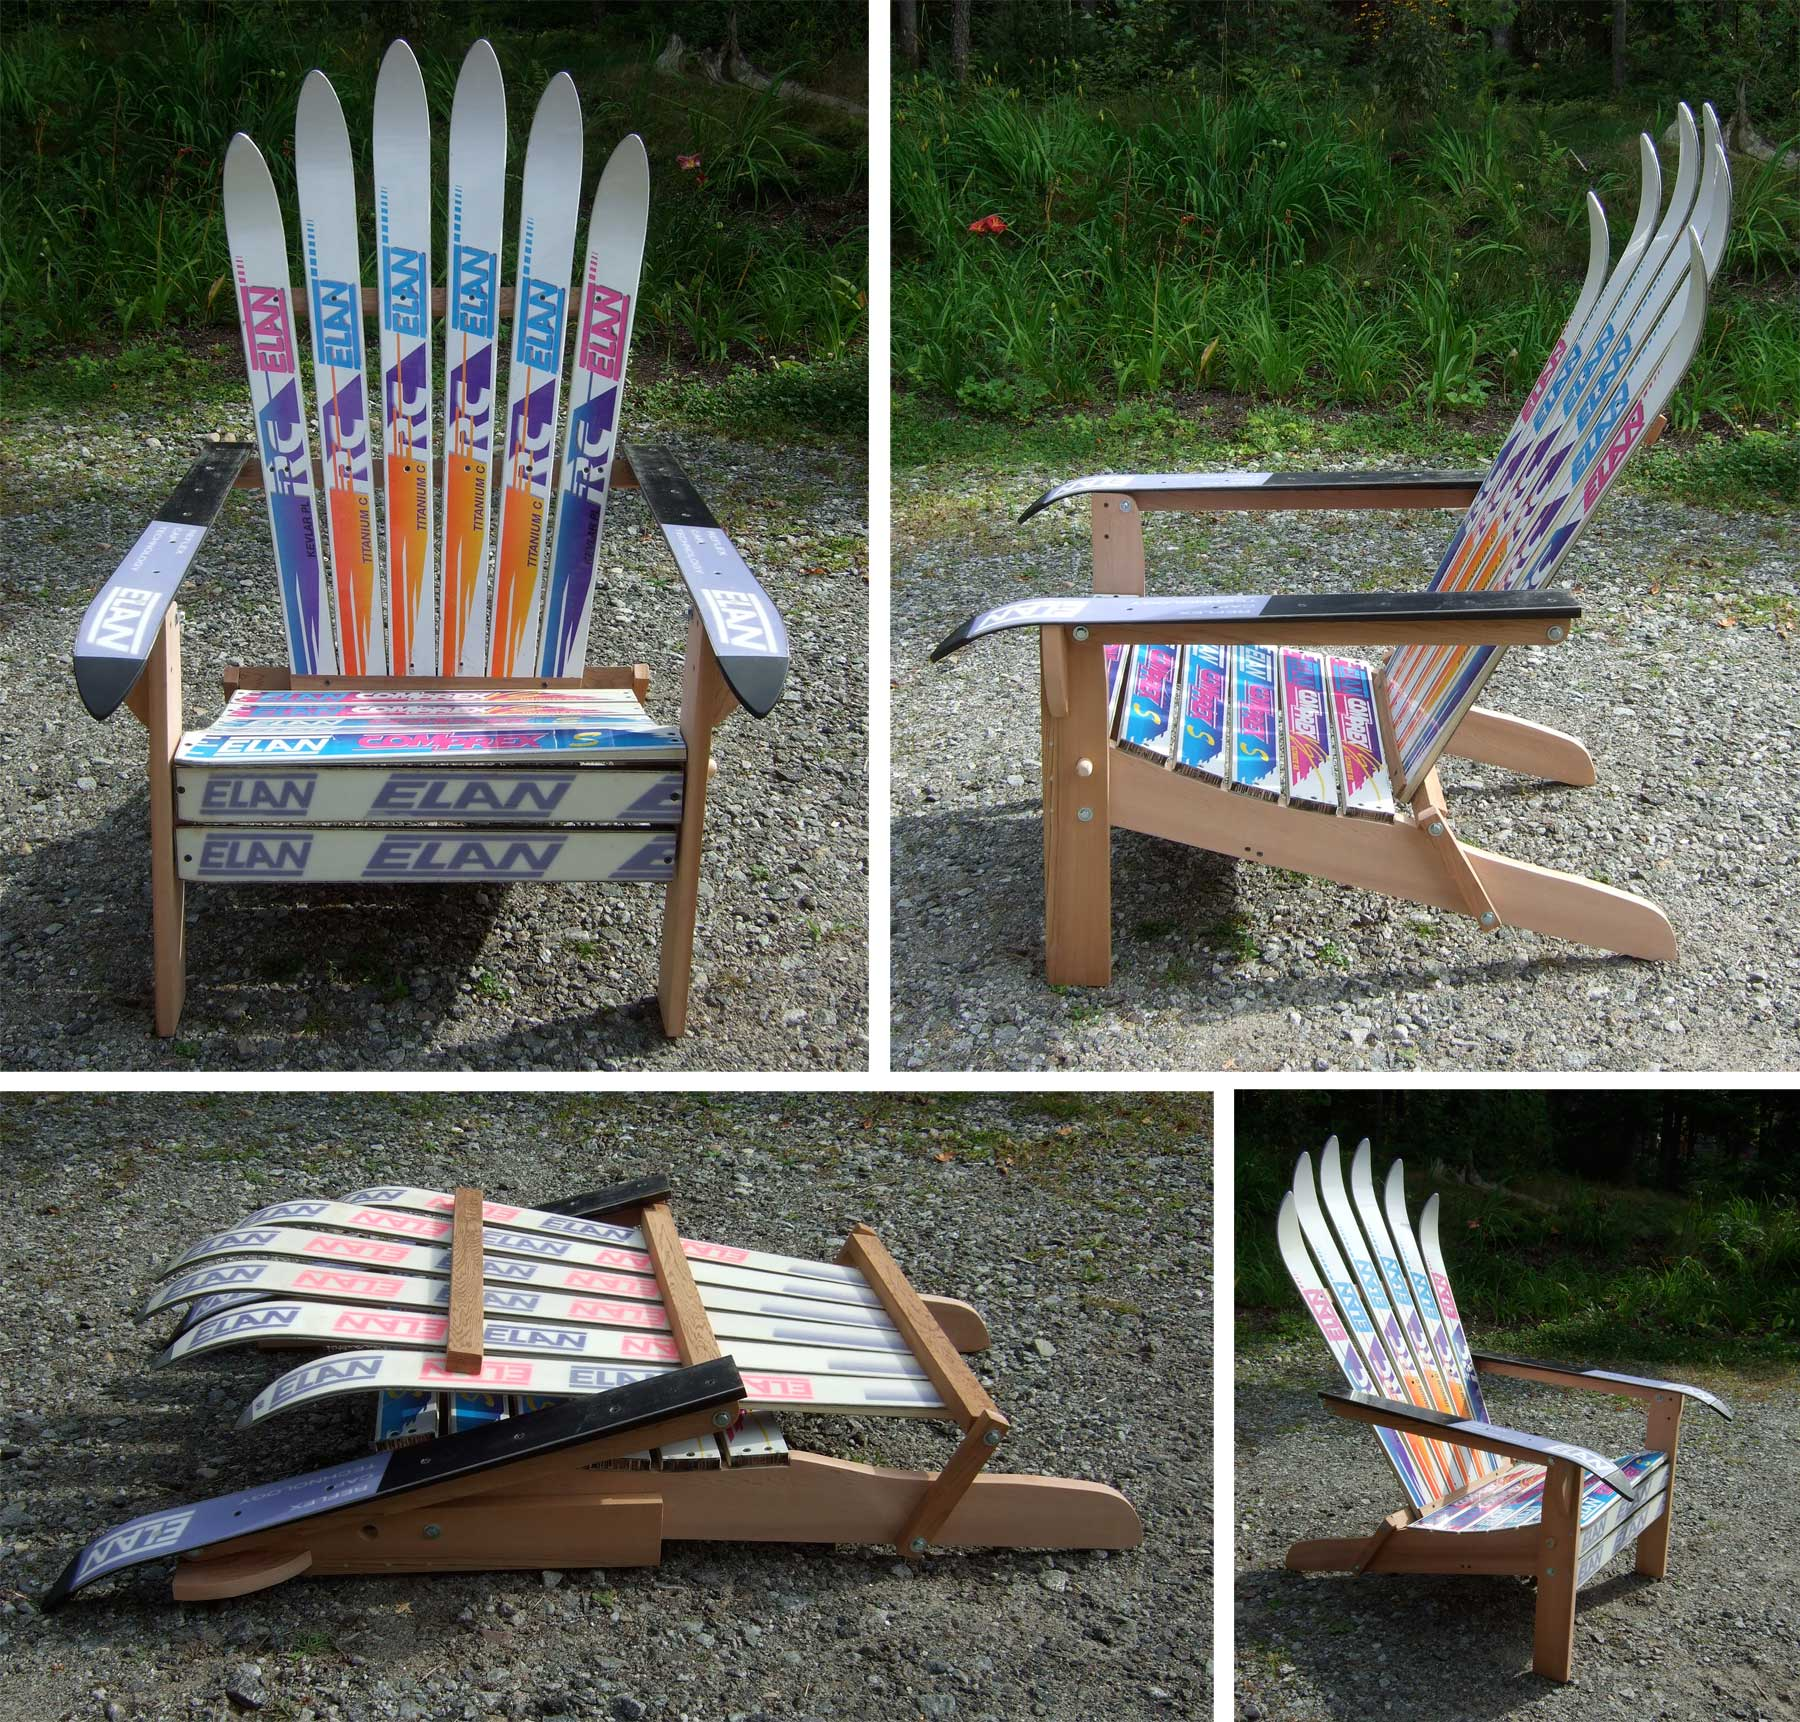 Plans For Adirondack Chairs Pdf How To Make A Water Ski Adirondack Chair Plans Diy